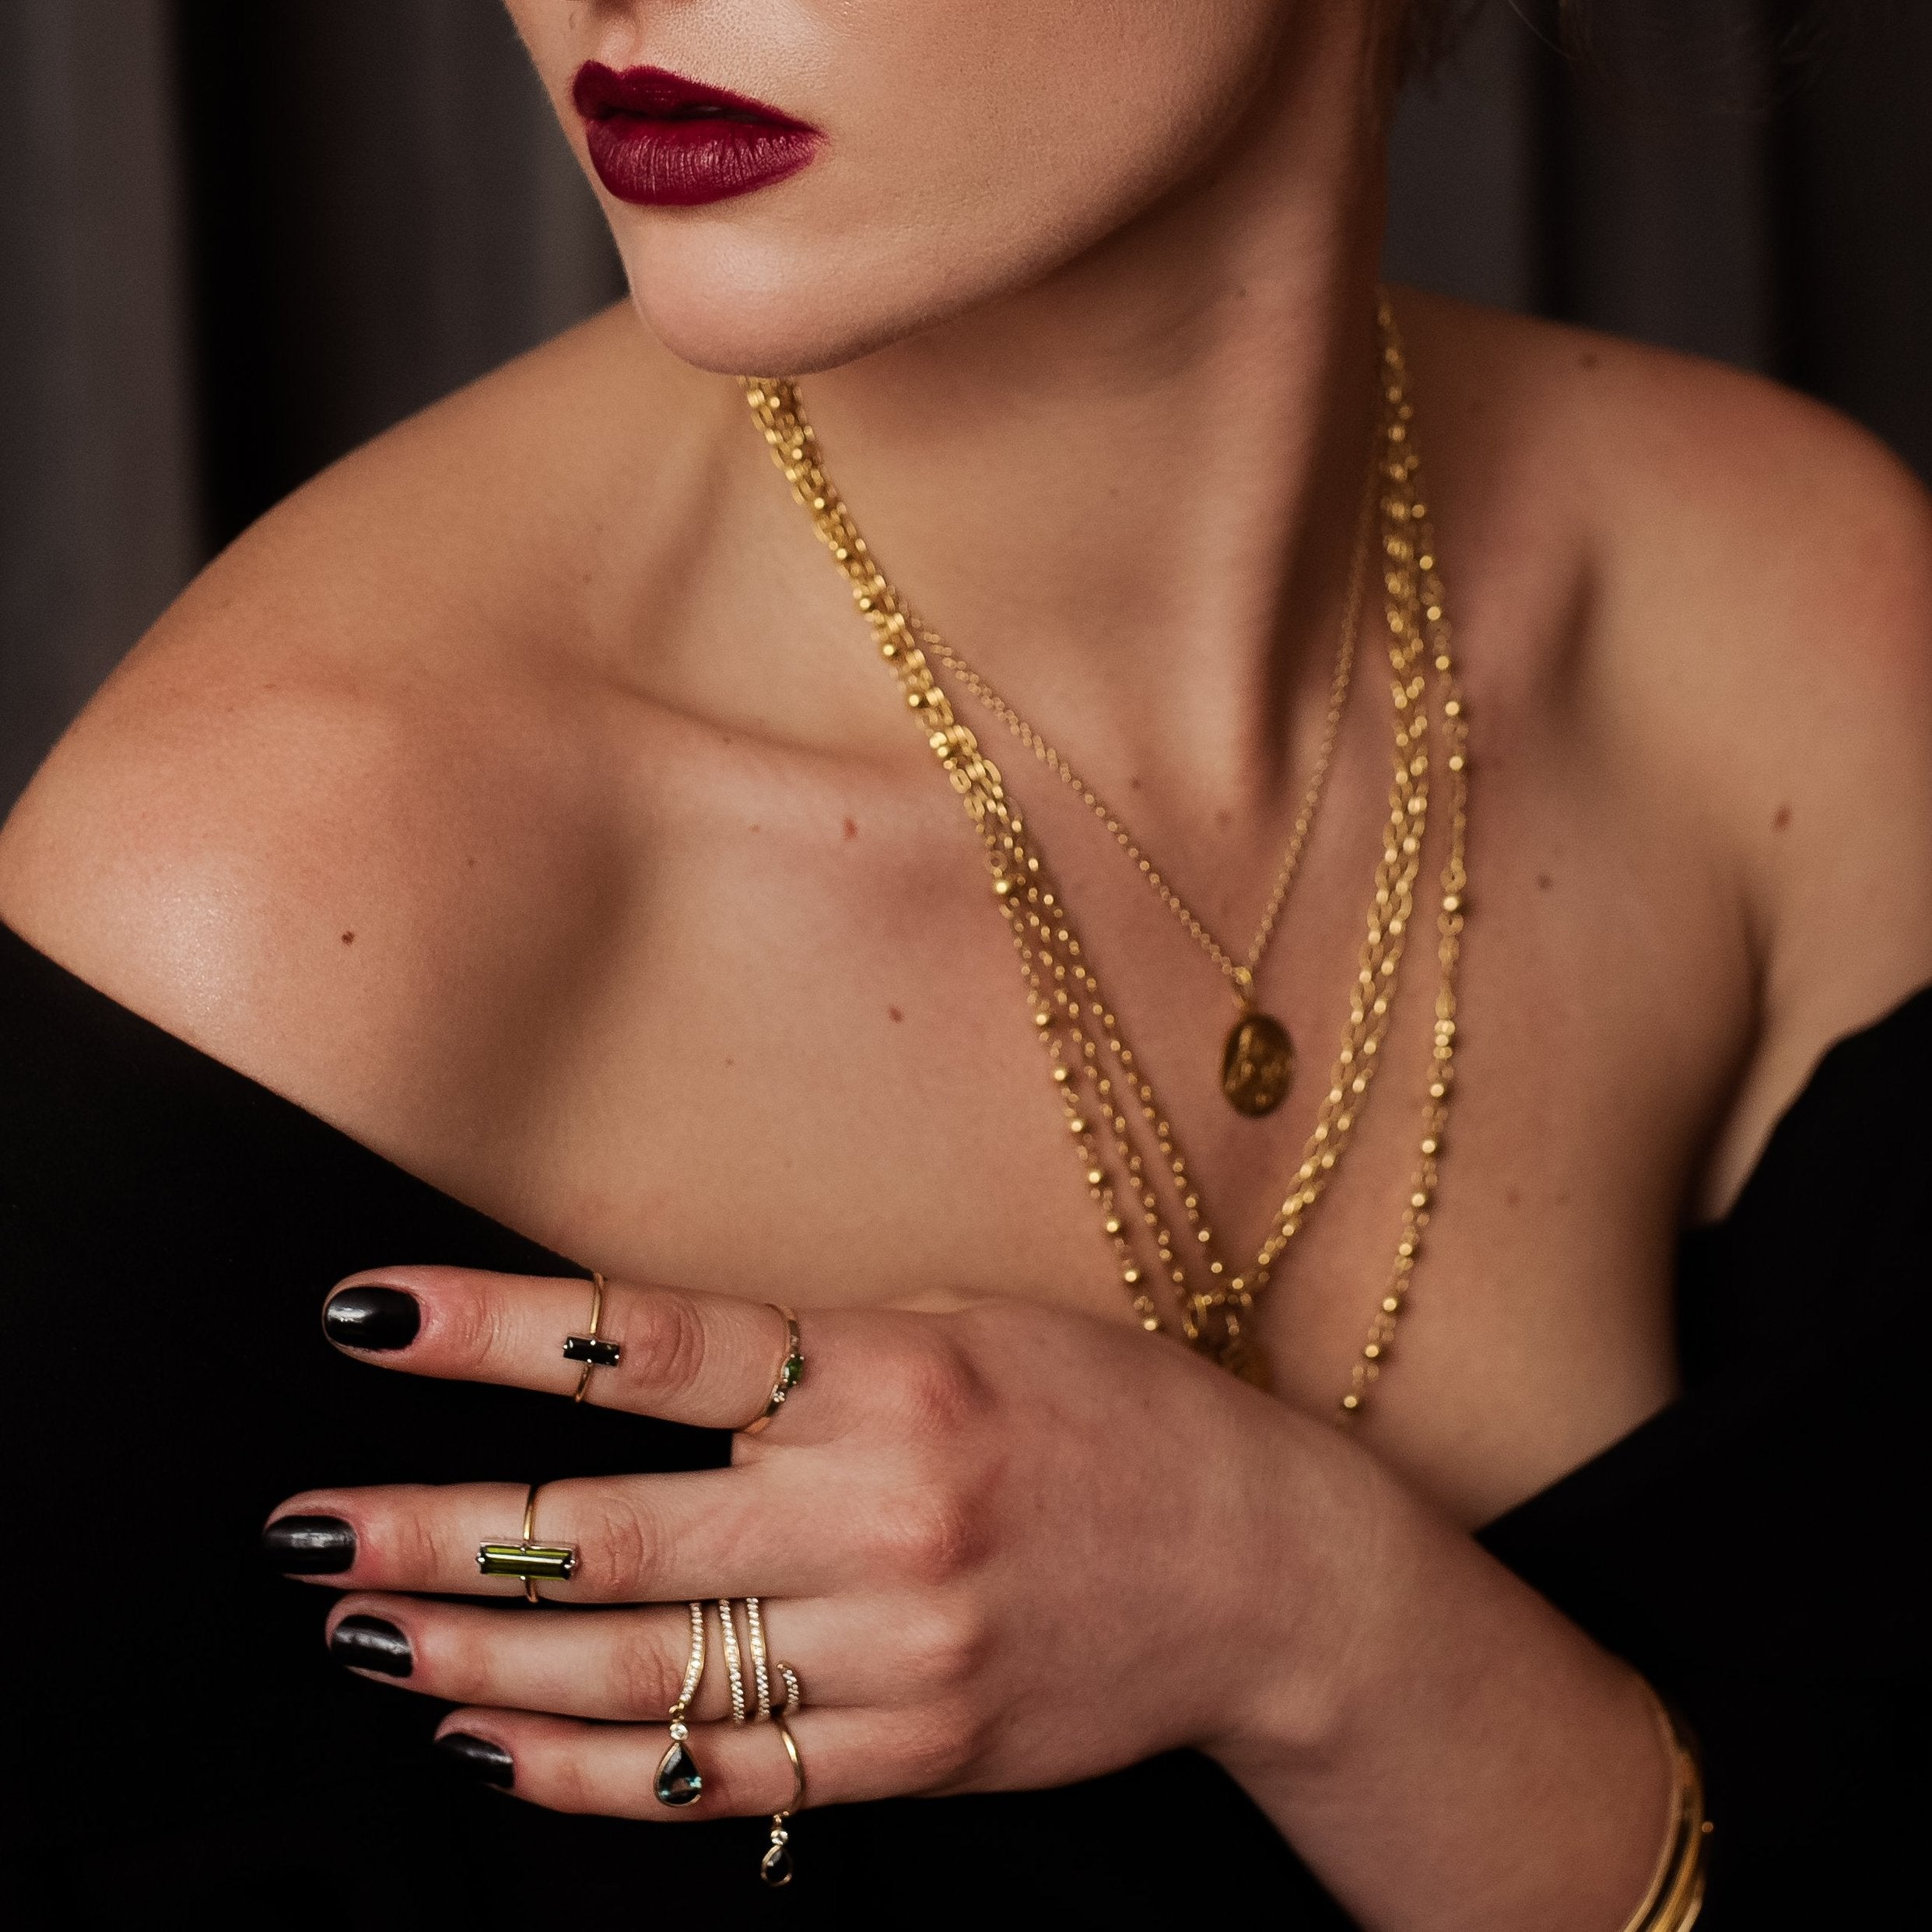 serafin jewellery, gold rings, gold necklaces